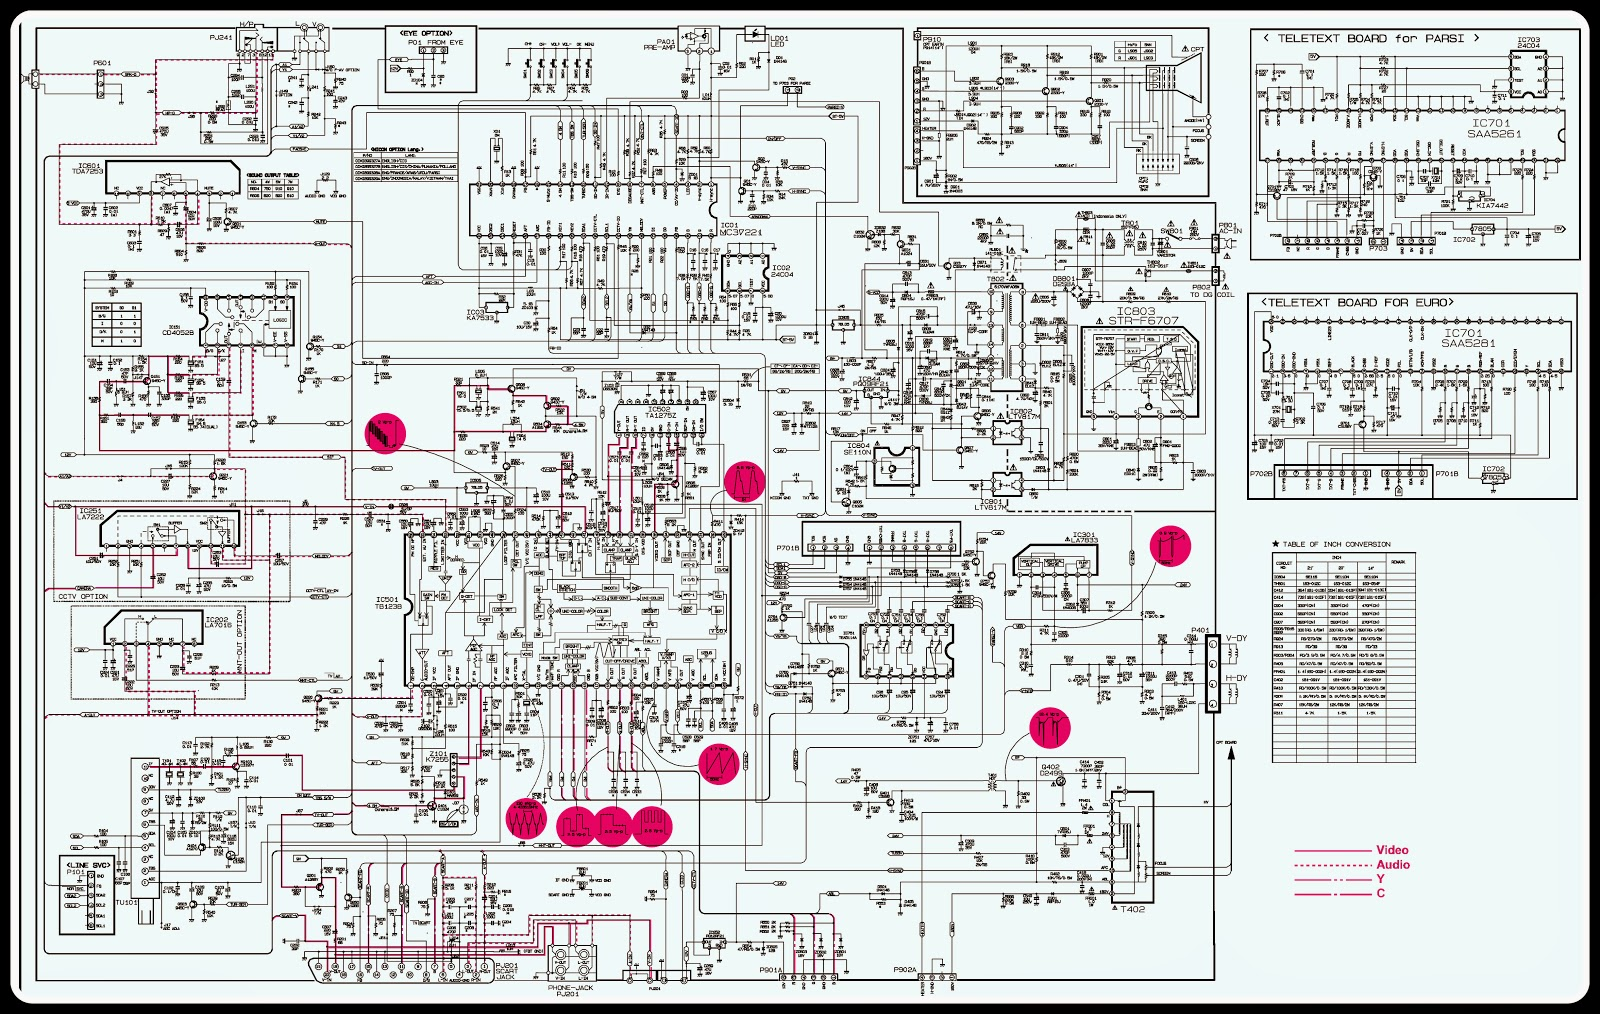 hight resolution of panasonic tv hookup diagram wiring diagram blogs charter connection diagrams tv connection diagram